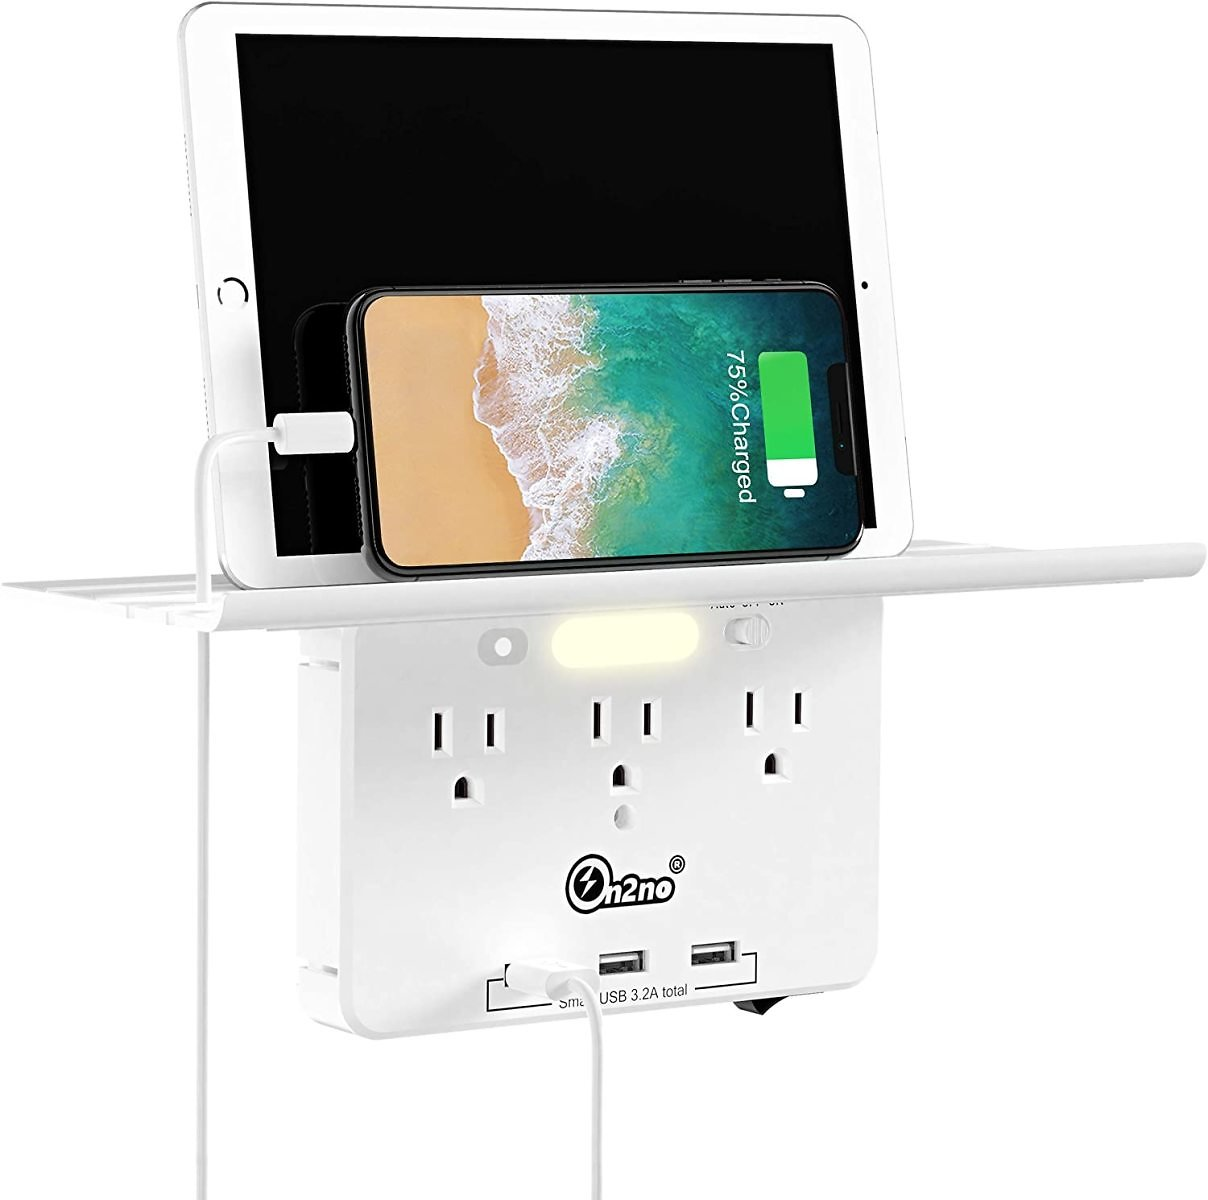 Socket Outlet Shelf -ON2NO Wall Outlet Extender with All Around Built-in Shelf, Multi Plug Outlet Surge Protector with Smart Nig